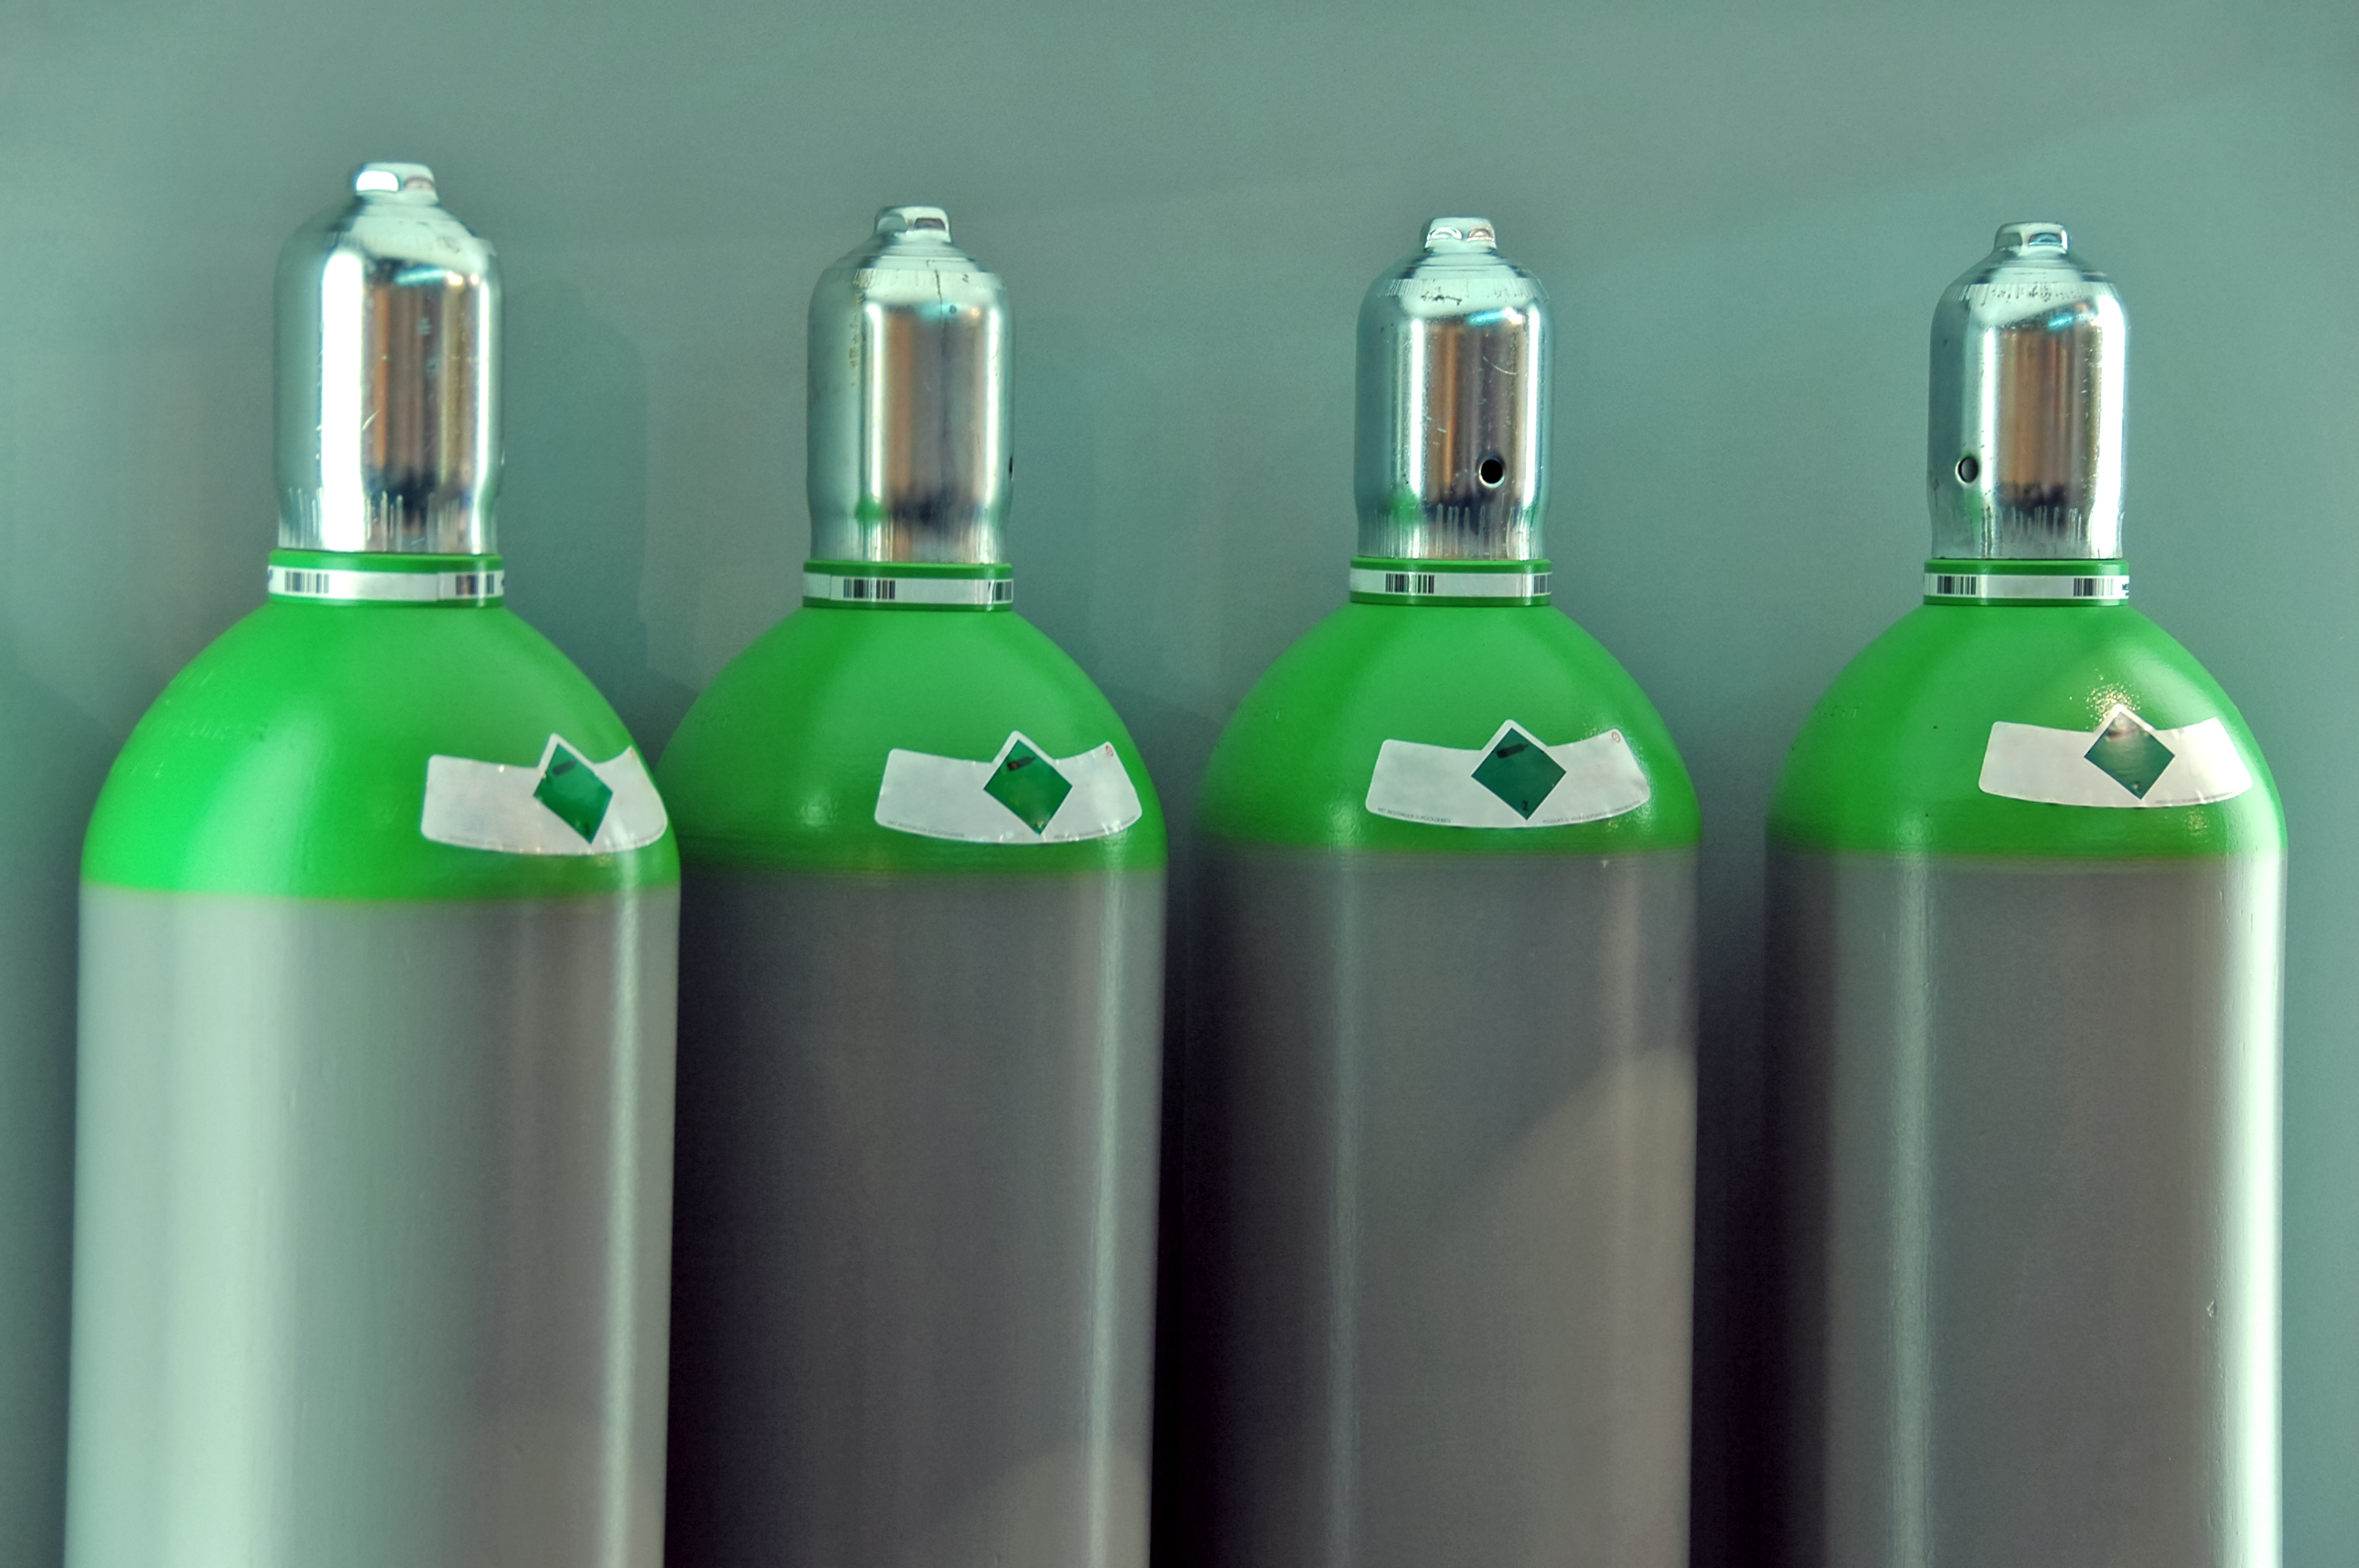 Gaseous hazards – chemical emergencies and the perils of gases